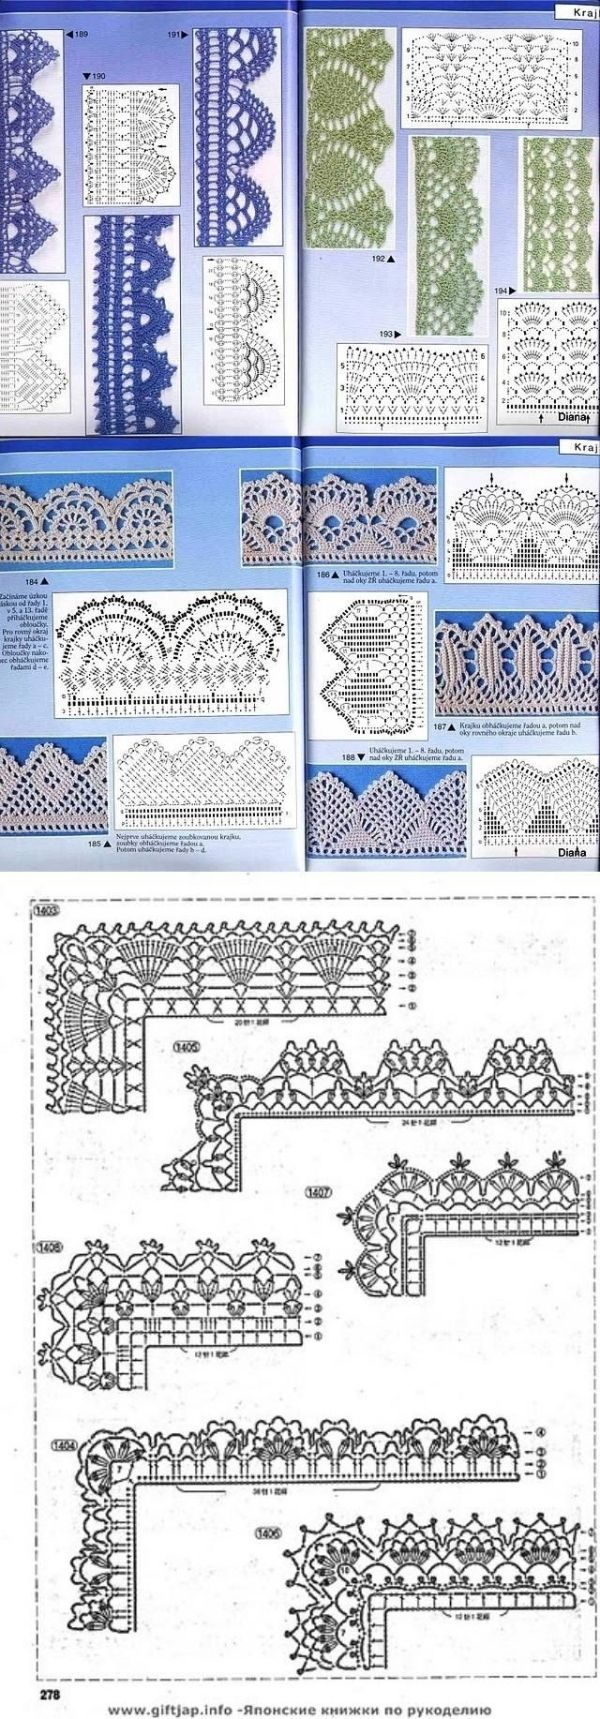 Best 25 crochet edging patterns ideas on pinterest crochet best 25 crochet edging patterns ideas on pinterest crochet edging patterns free crochet borders and crochet border patterns bankloansurffo Image collections